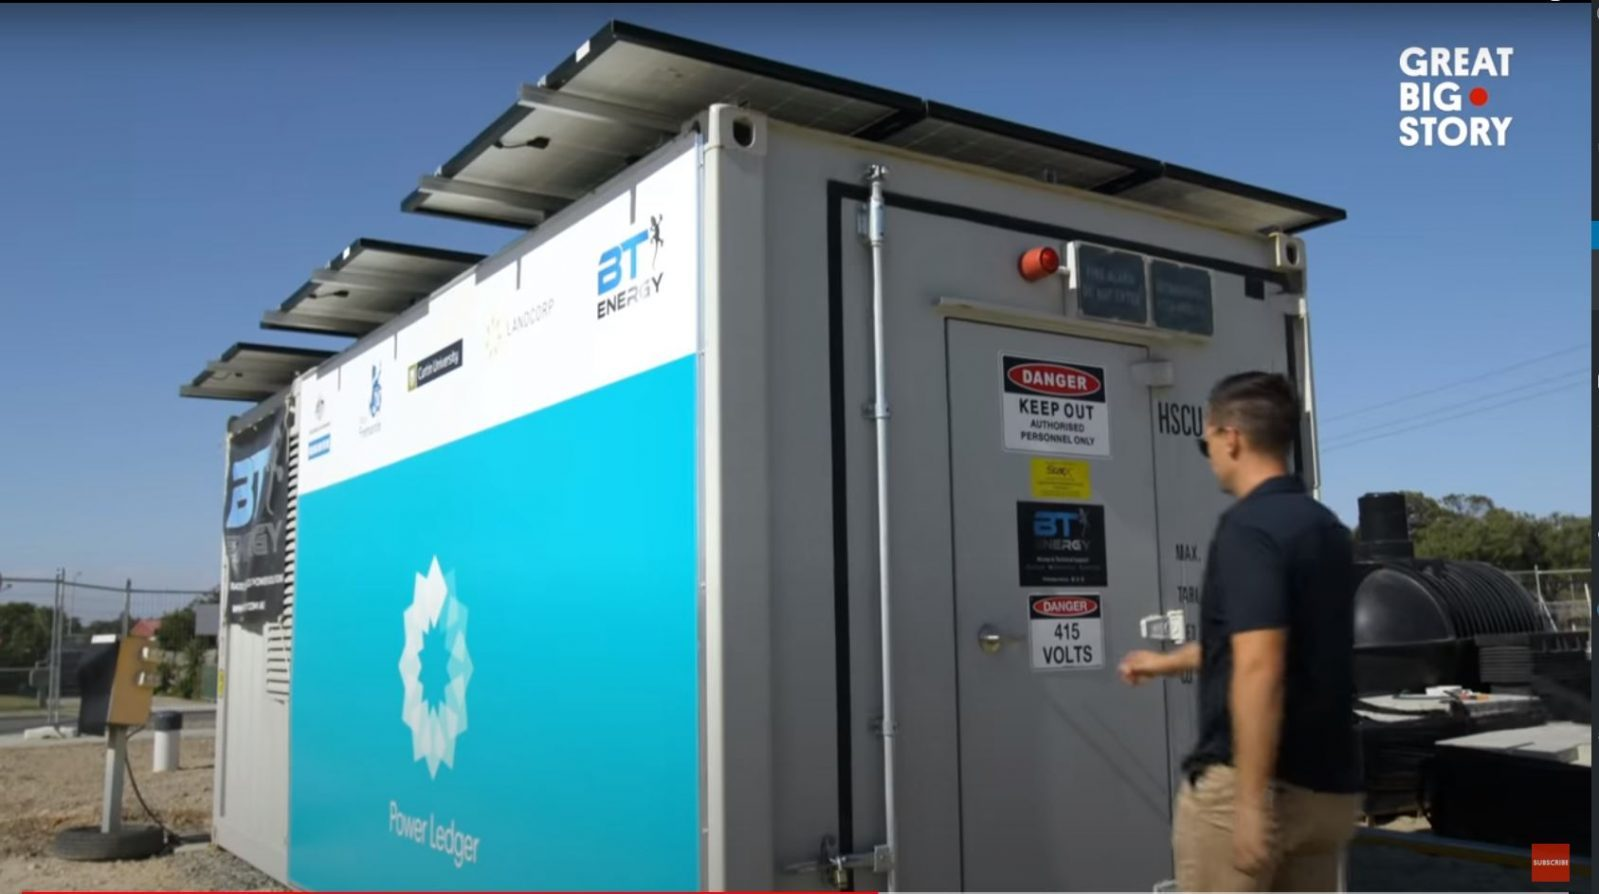 BT Energy - Battery Energy Storage System - BESS - CNN - Great Big Story